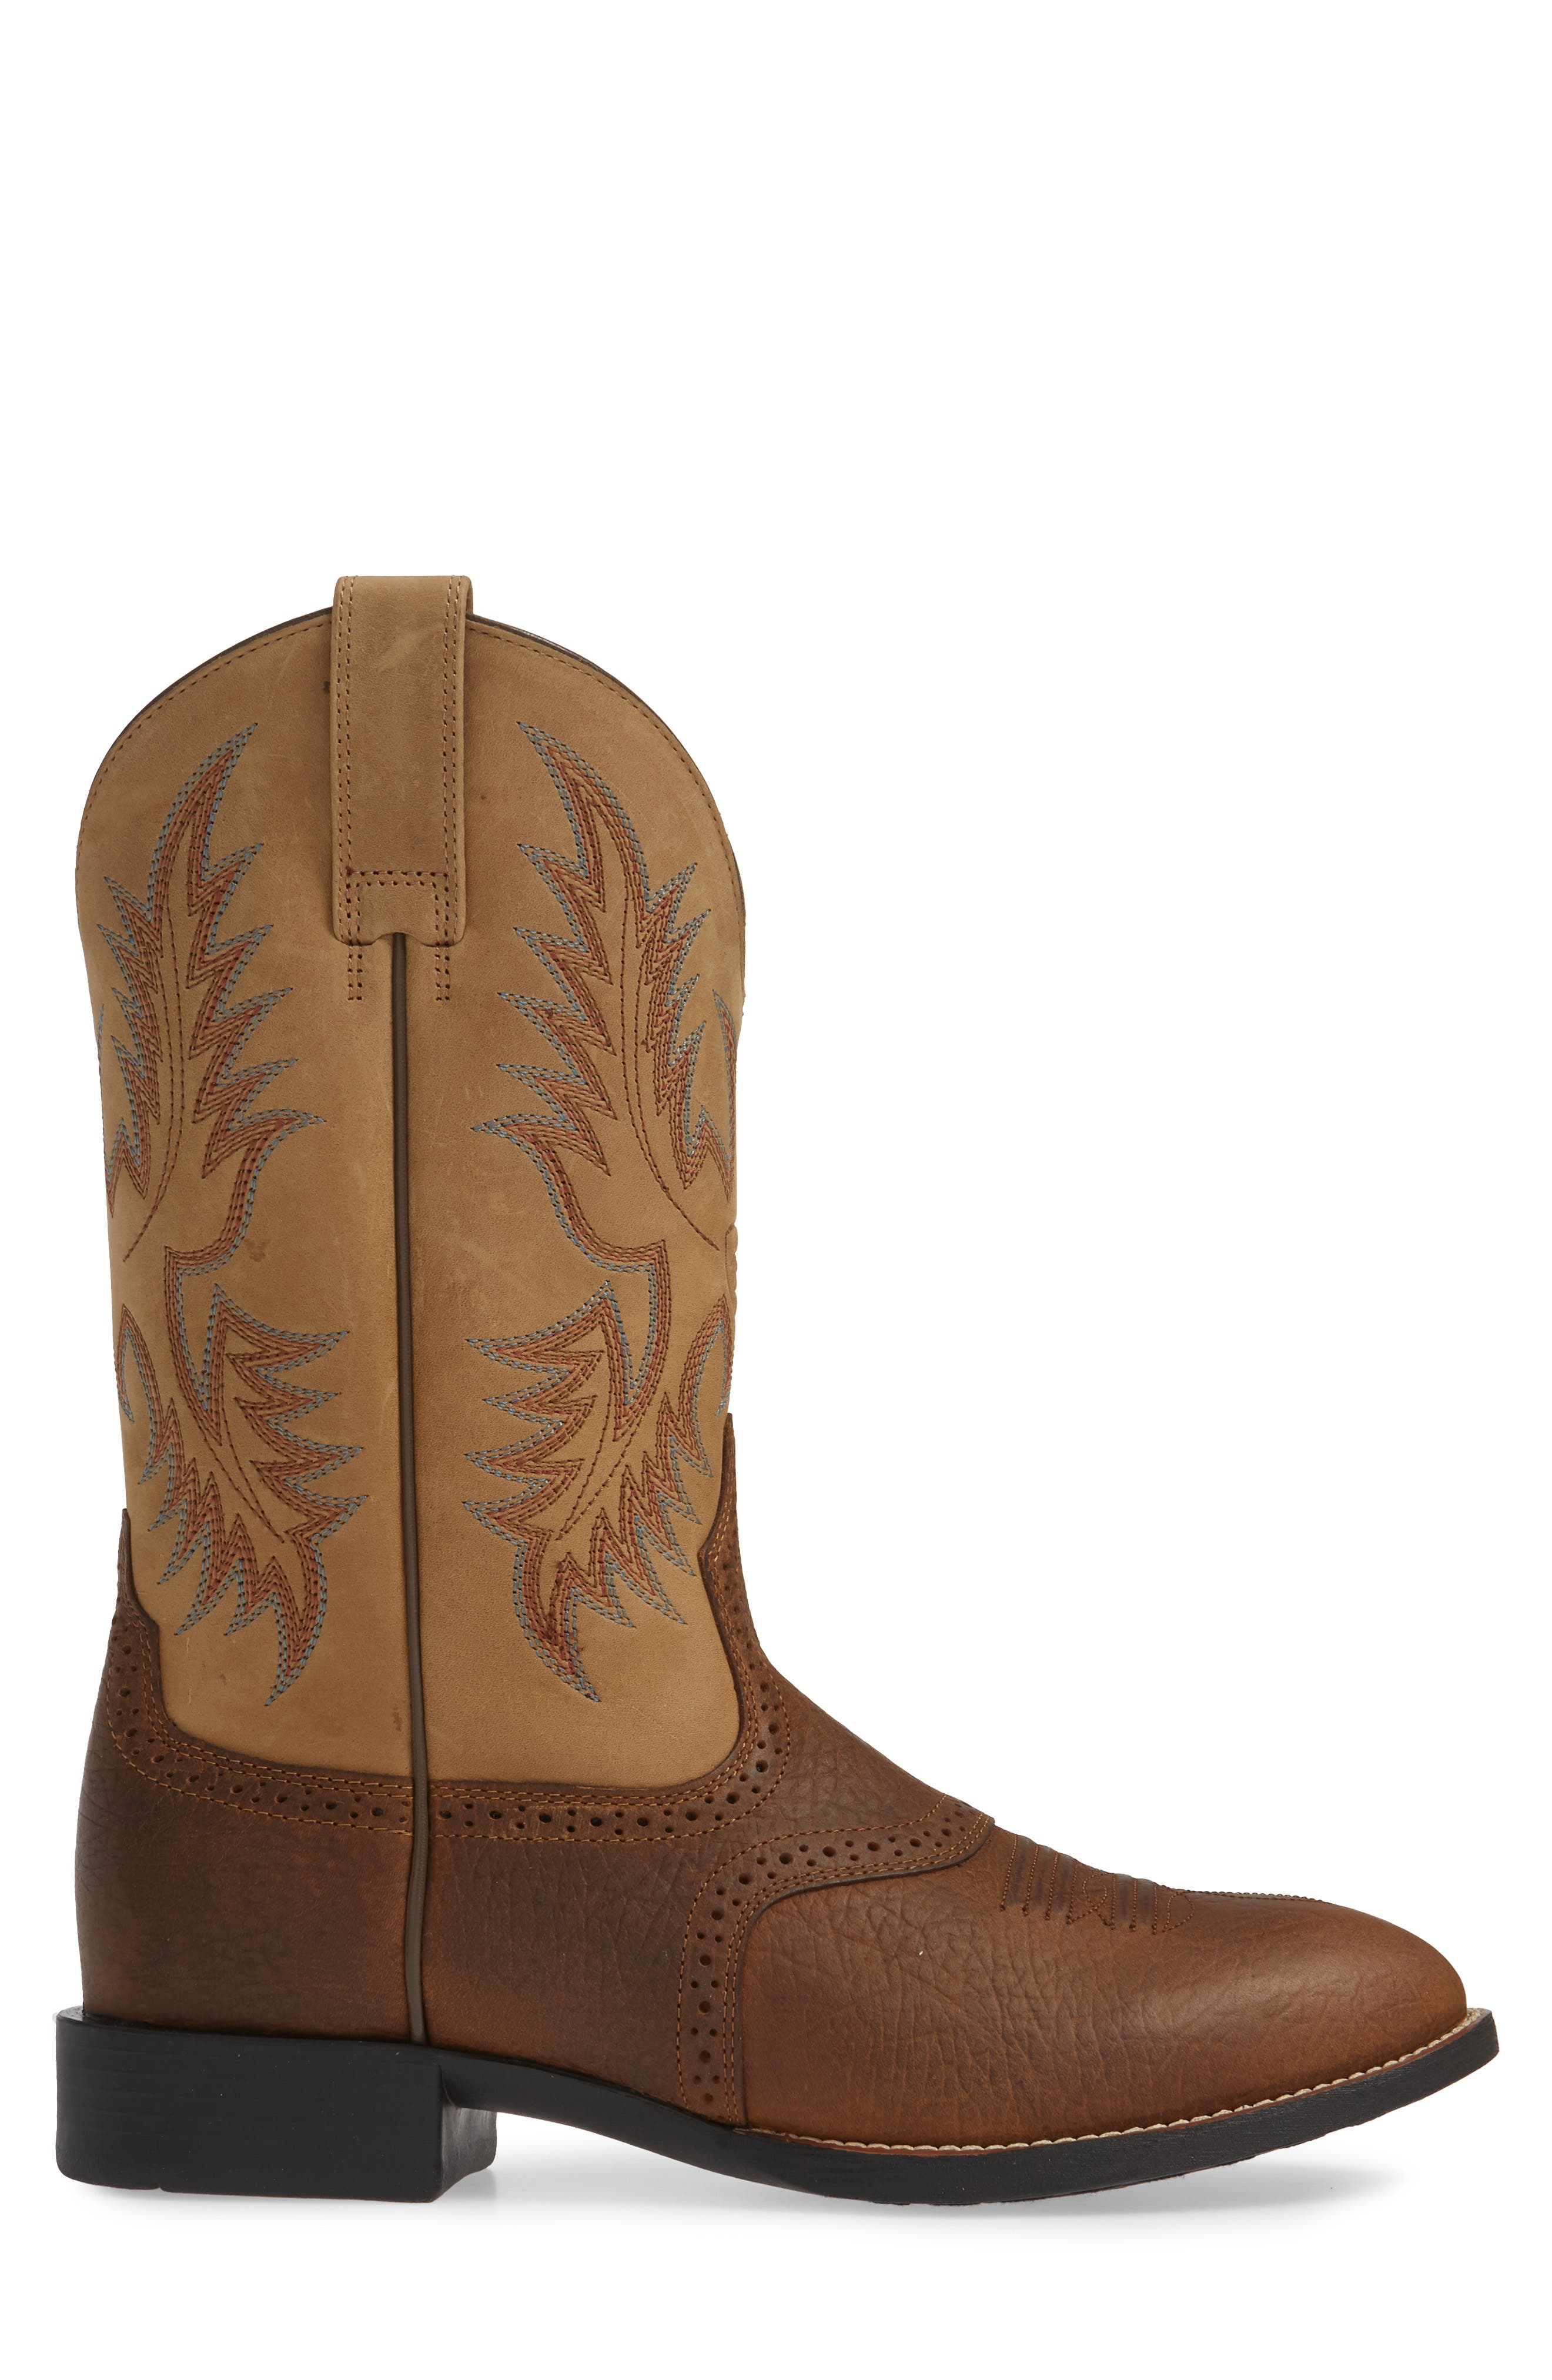 ARIAT, Heritage Stockman Cowboy Boot, Alternate thumbnail 3, color, BROWN/ BEIGE LEATHER